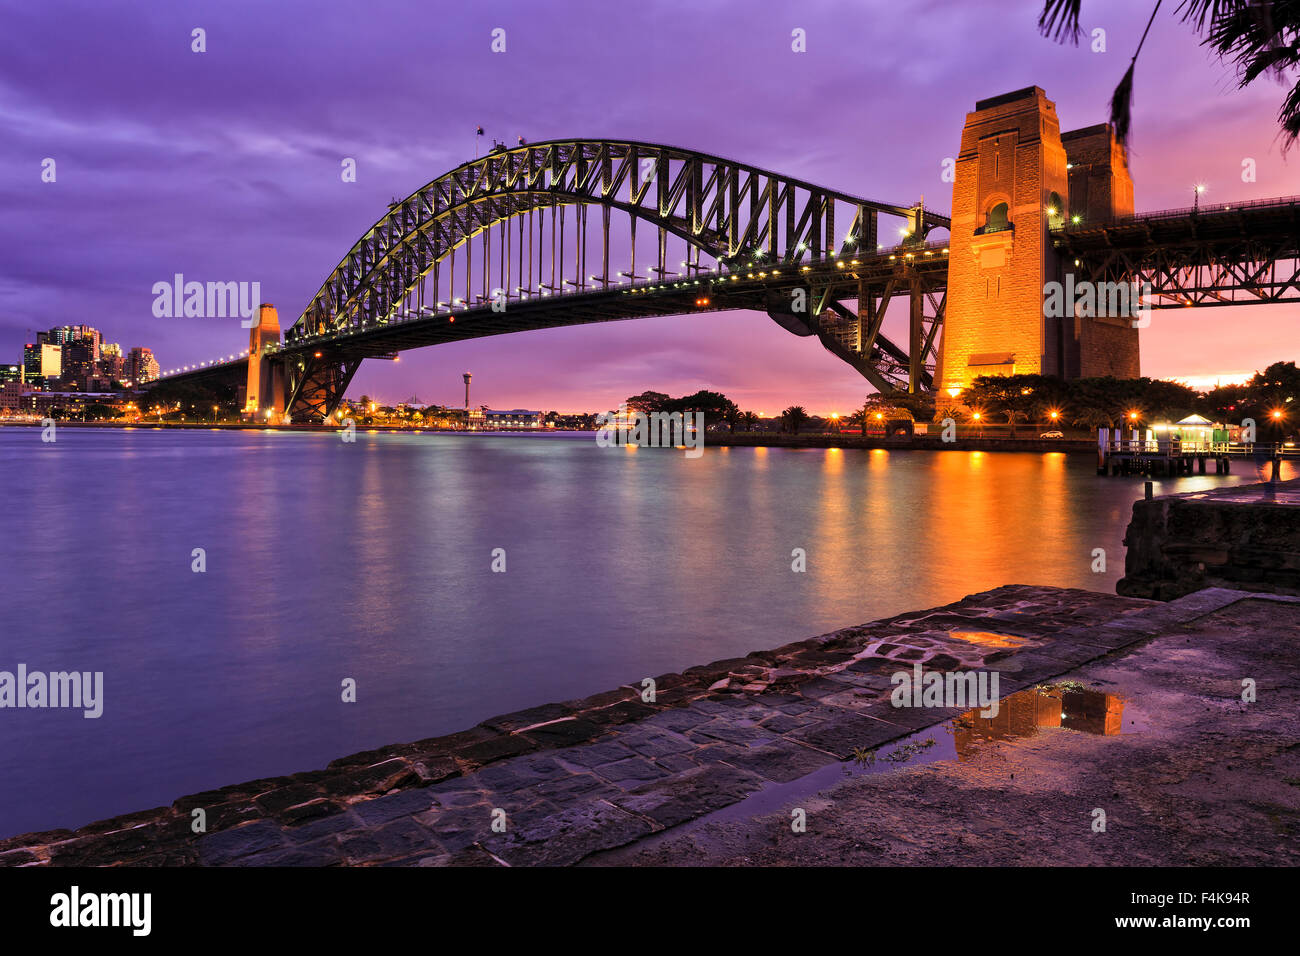 Sydney harbour bridge side view from Milsons point after fresh rain when brightly illuminated bridge arch and column - Stock Image